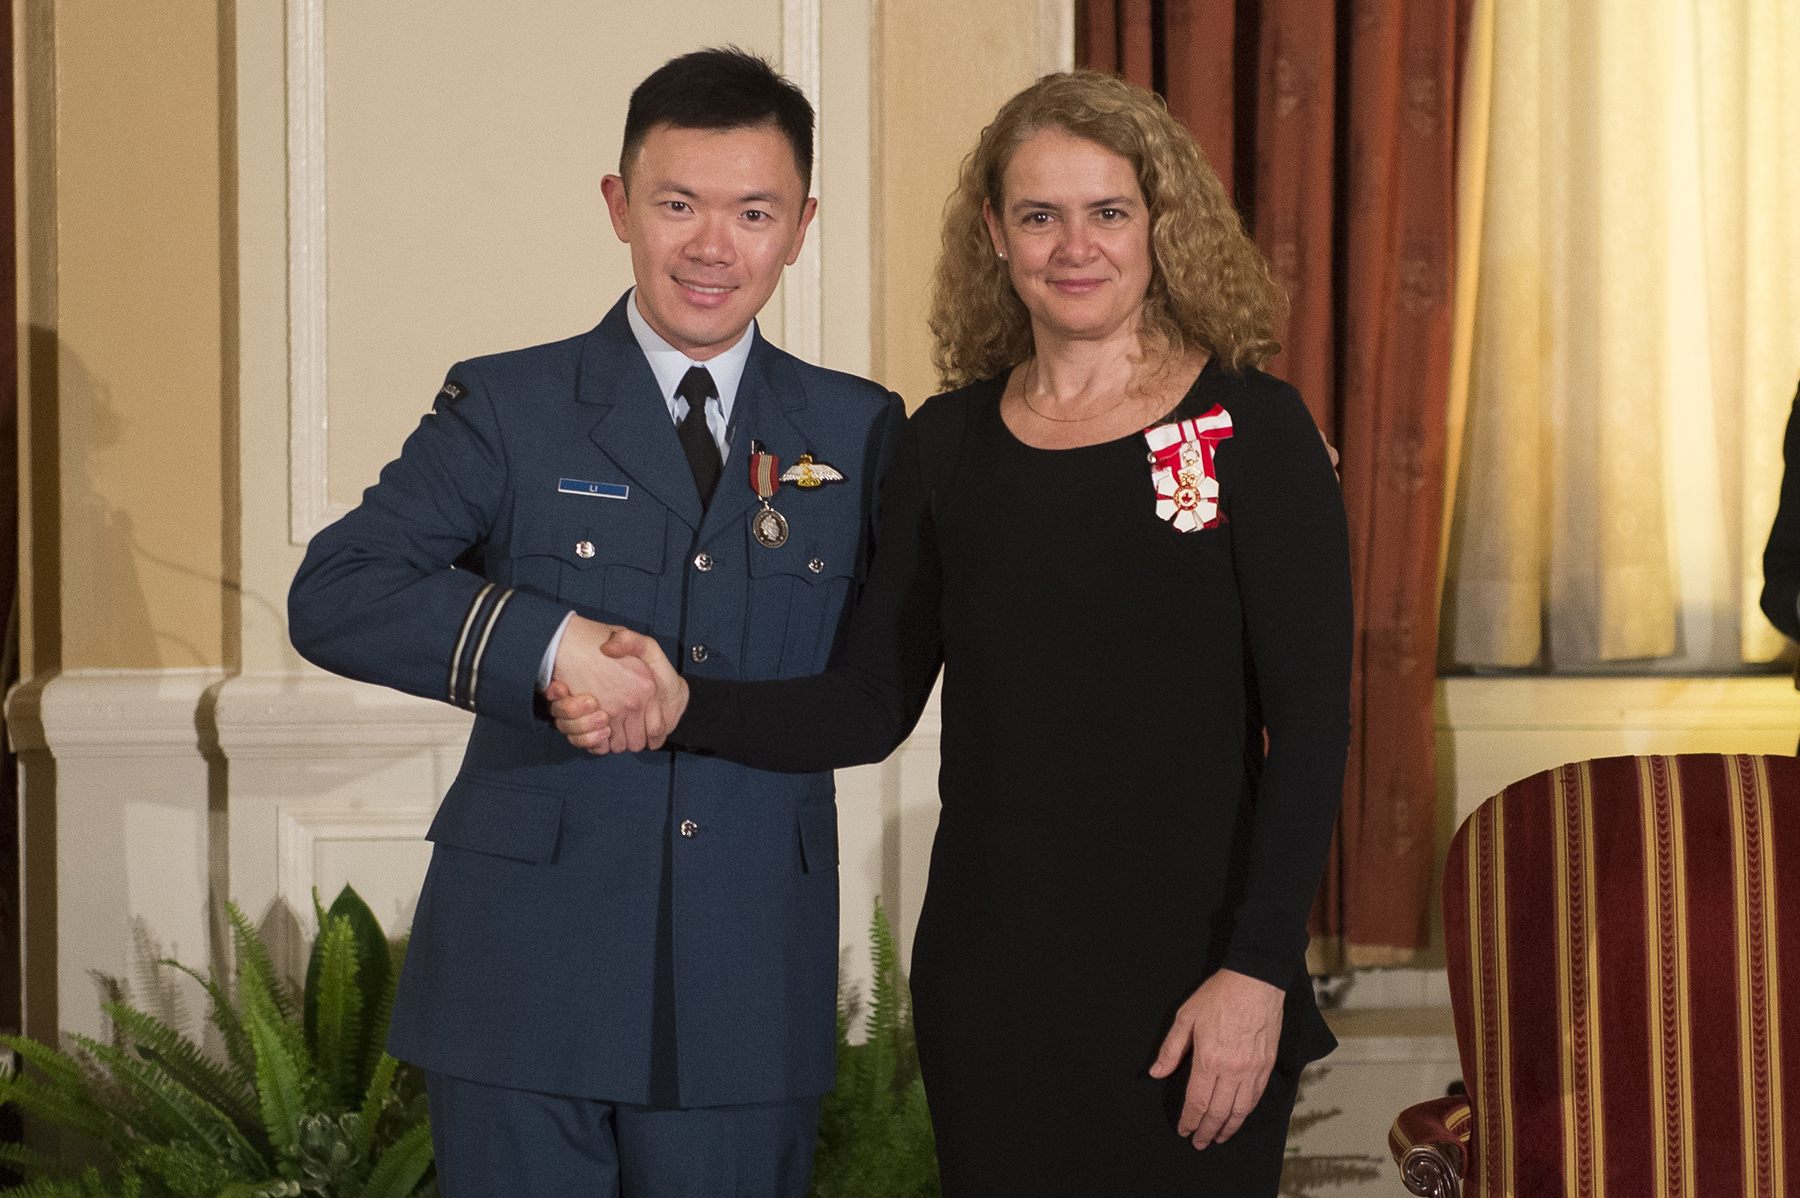 Captain Herman Li receives the Sovereign's Medal for Volunteers from Governor General and Commander-in-Chief of Canada Julie Payette on February 20, 2018. PHOTO: Sergeant Johanie Maheu, OSGG, Credit: Master Corporal Vincent Carbonneau, GG02-2018-0062-063